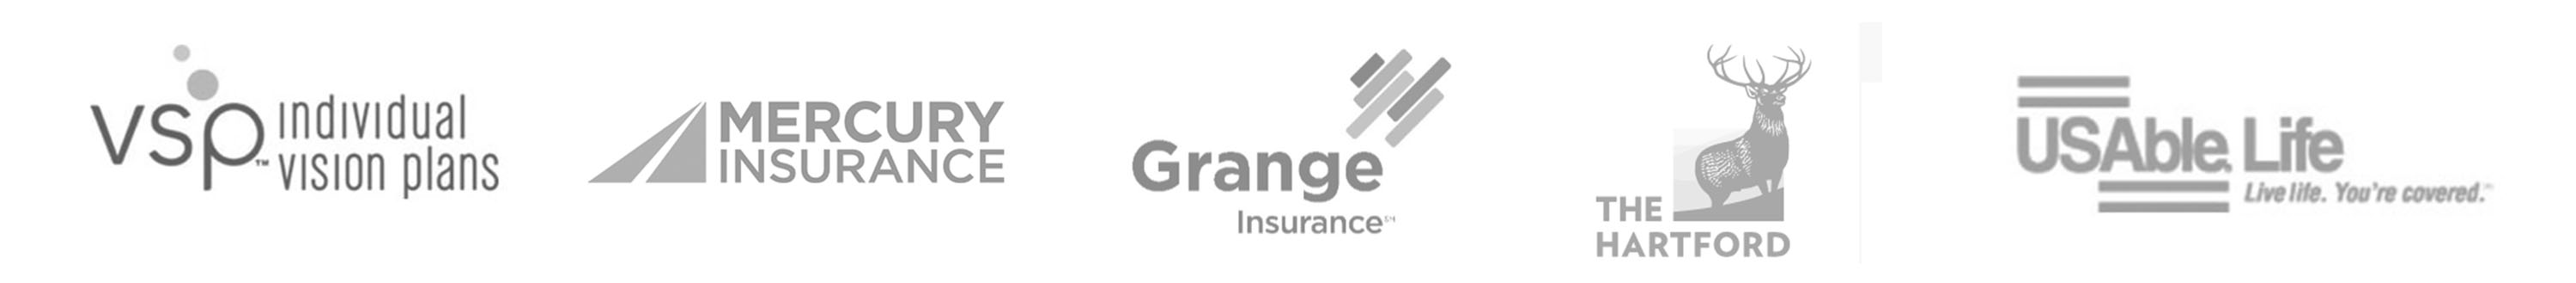 logos of VSP, Mercury Insurance, Grage Insurance, The Hartfod and USAble Life companies